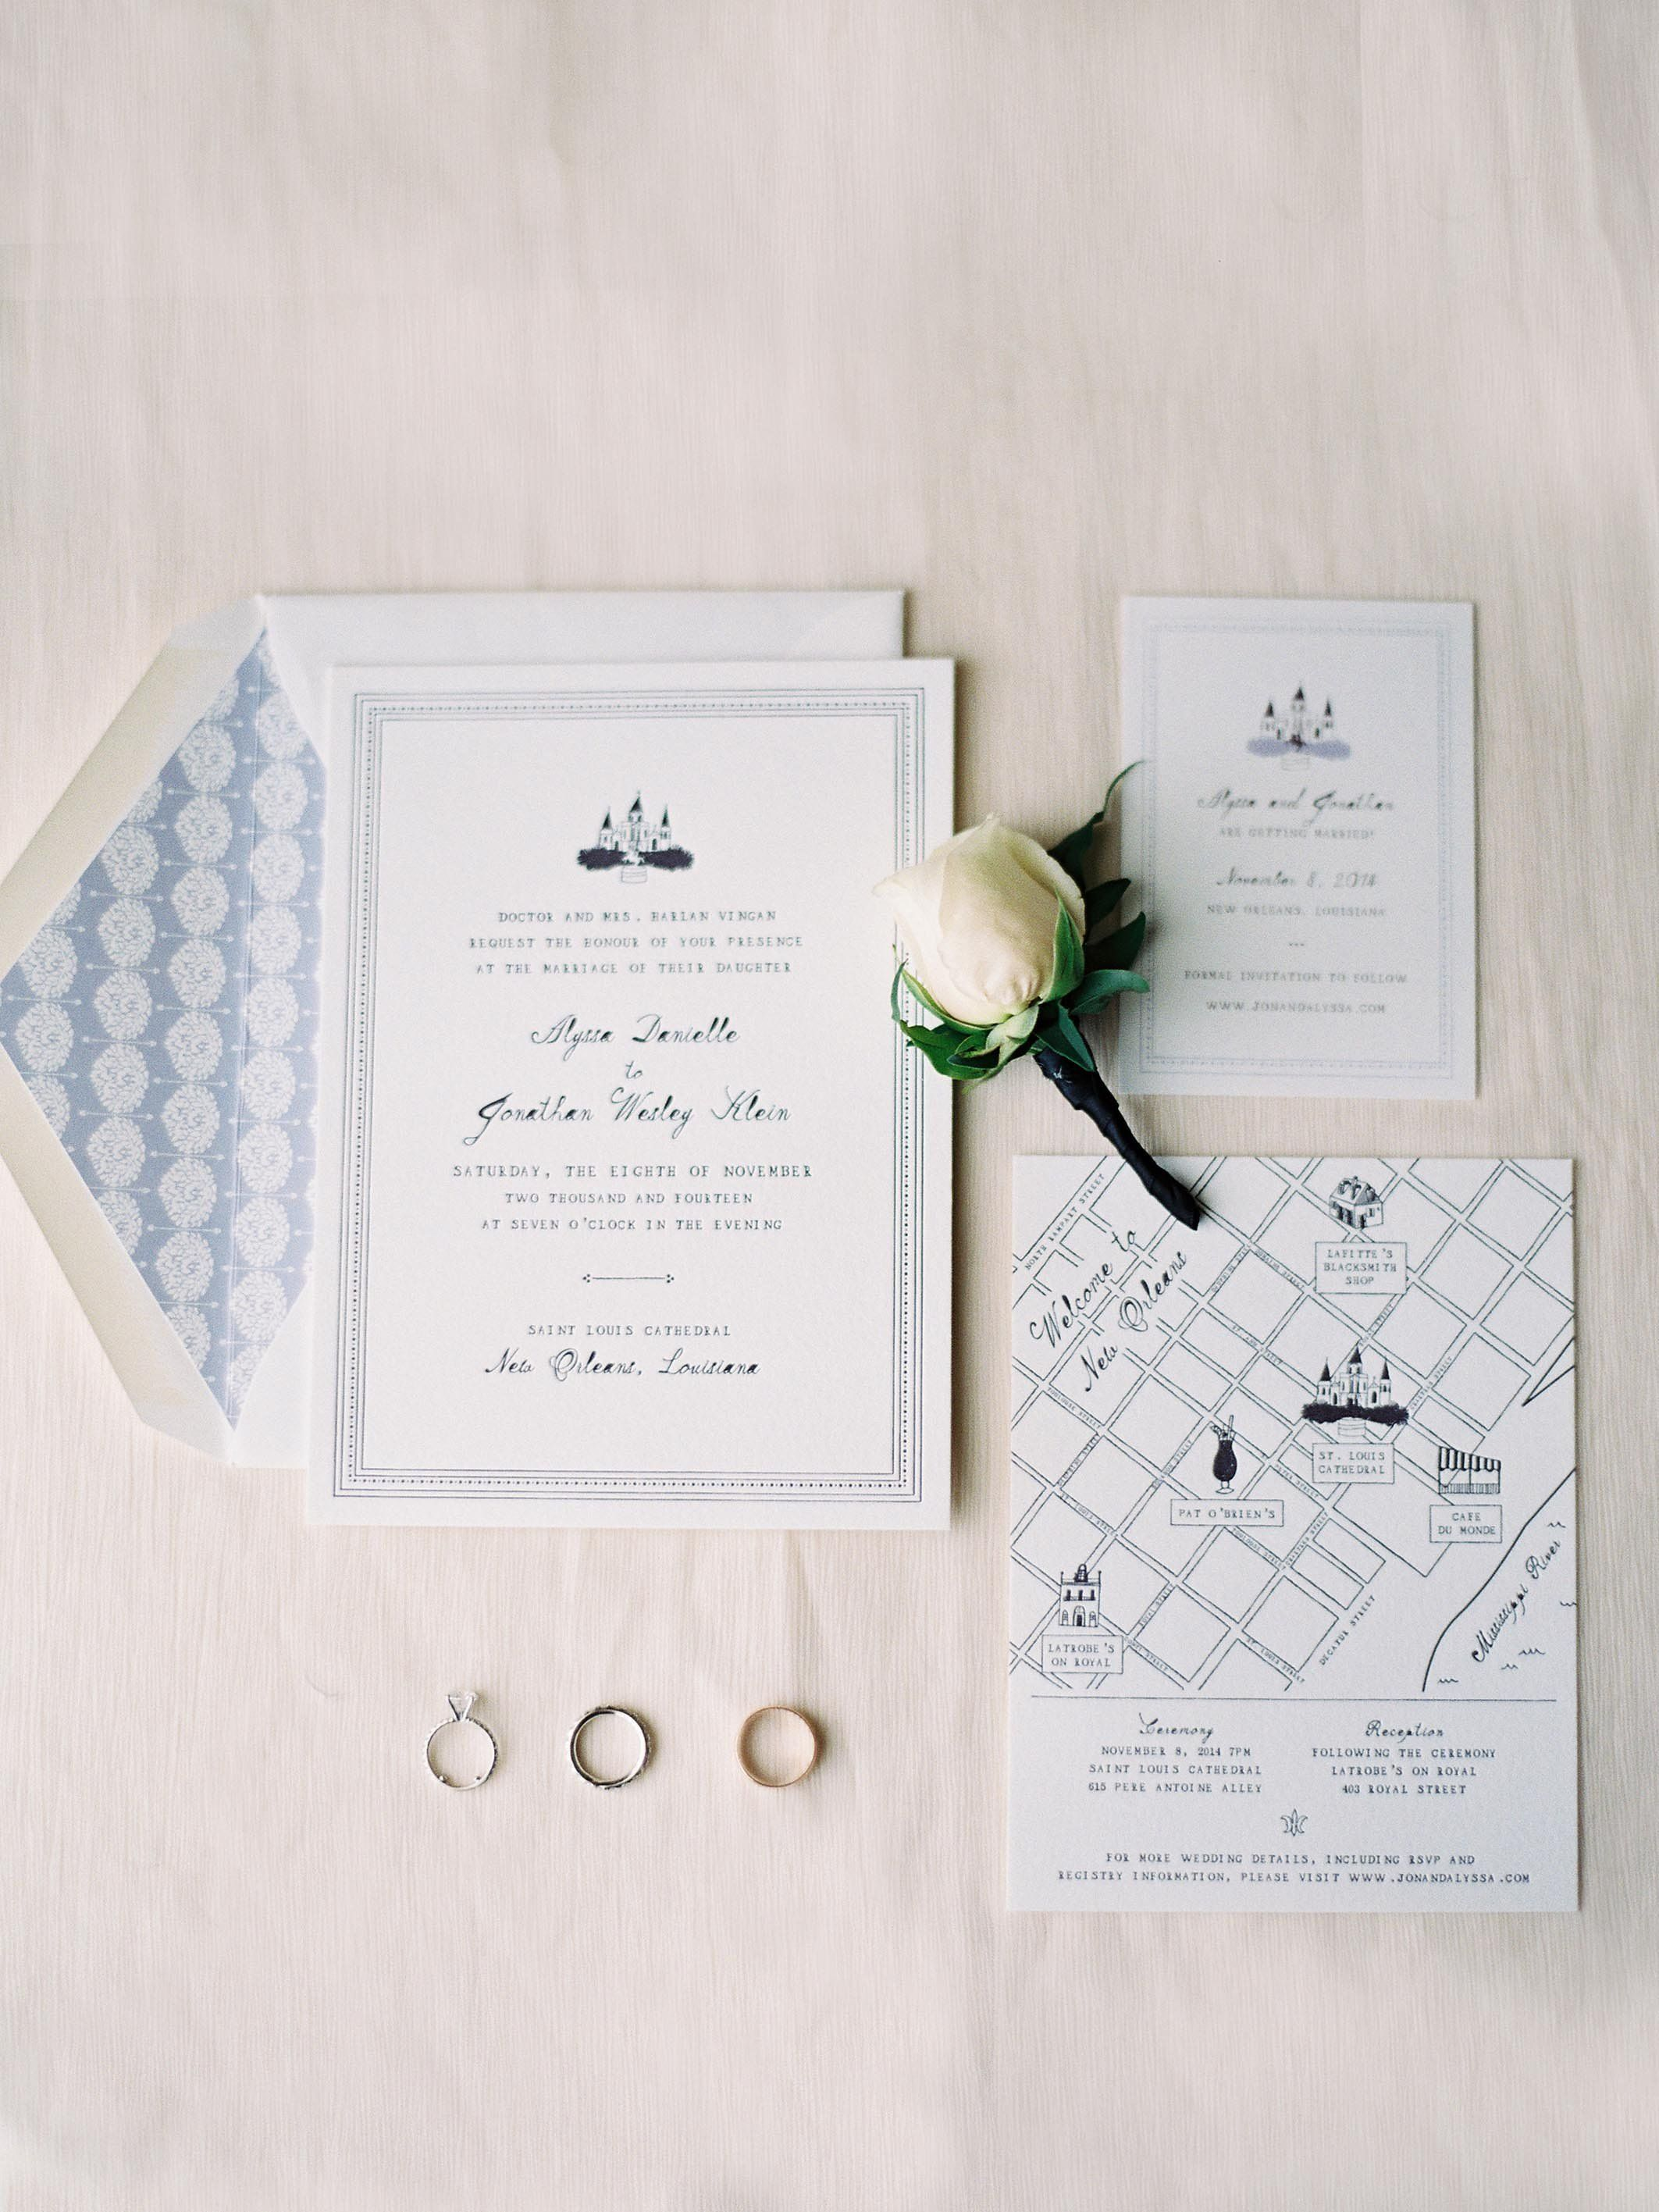 what do you say on wedding invitation%0A Why New Orleans u     French Quarter Is The Perfect Place to Say  u    I Do u